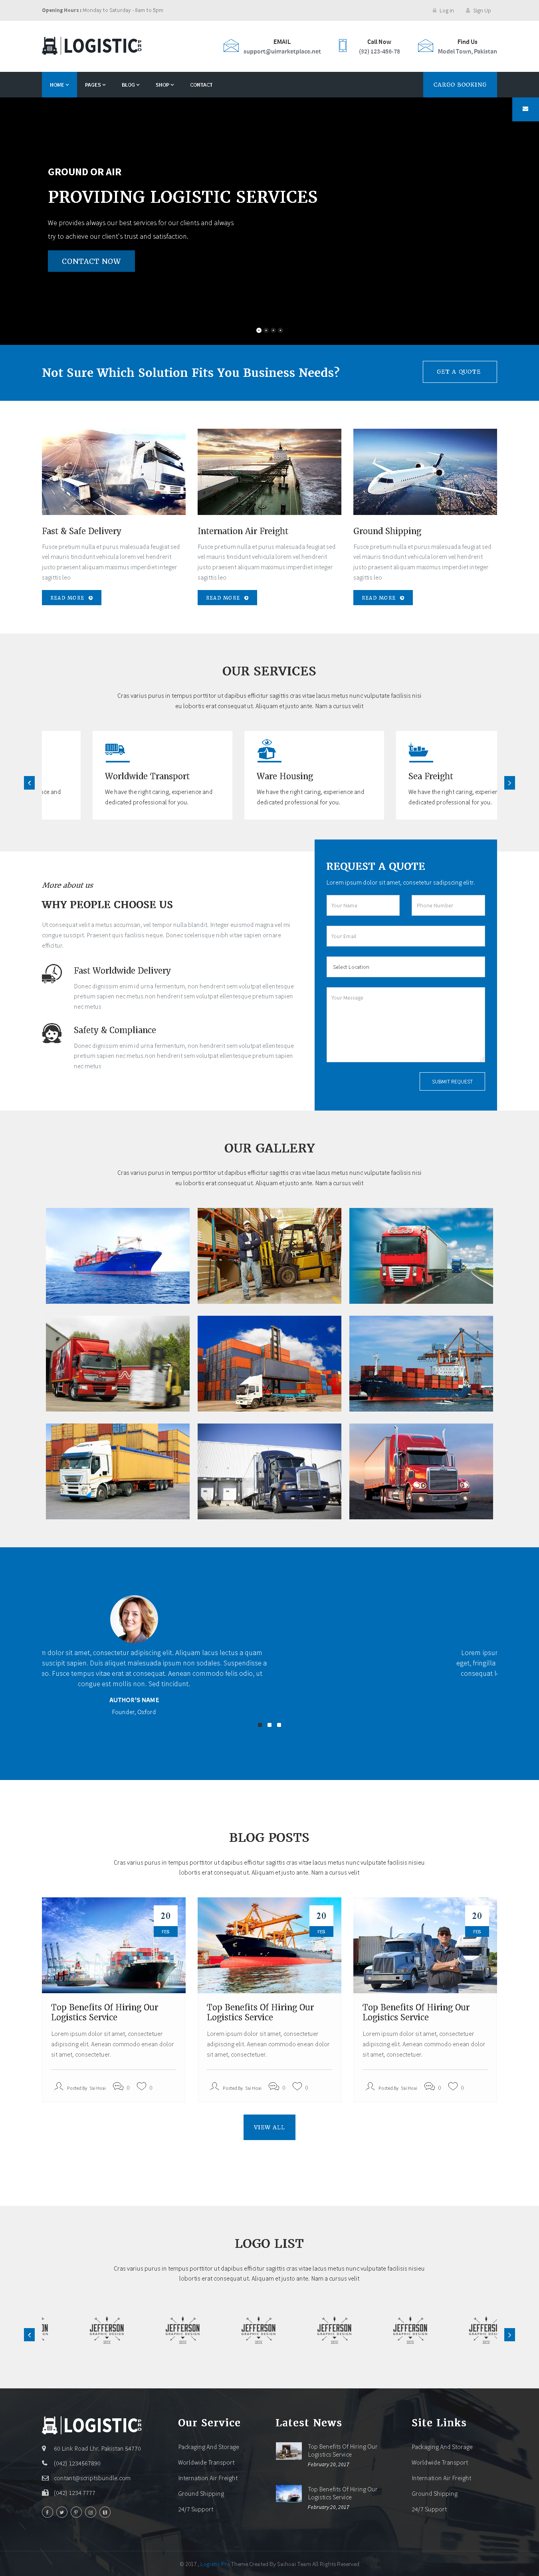 5 Best SHOPIFY Premium Themes Collection for SERVICES Store 2017 - Logistic Pro - Transport - Cargo - Online Tracking - Booking & Logistics Services Shopify Theme